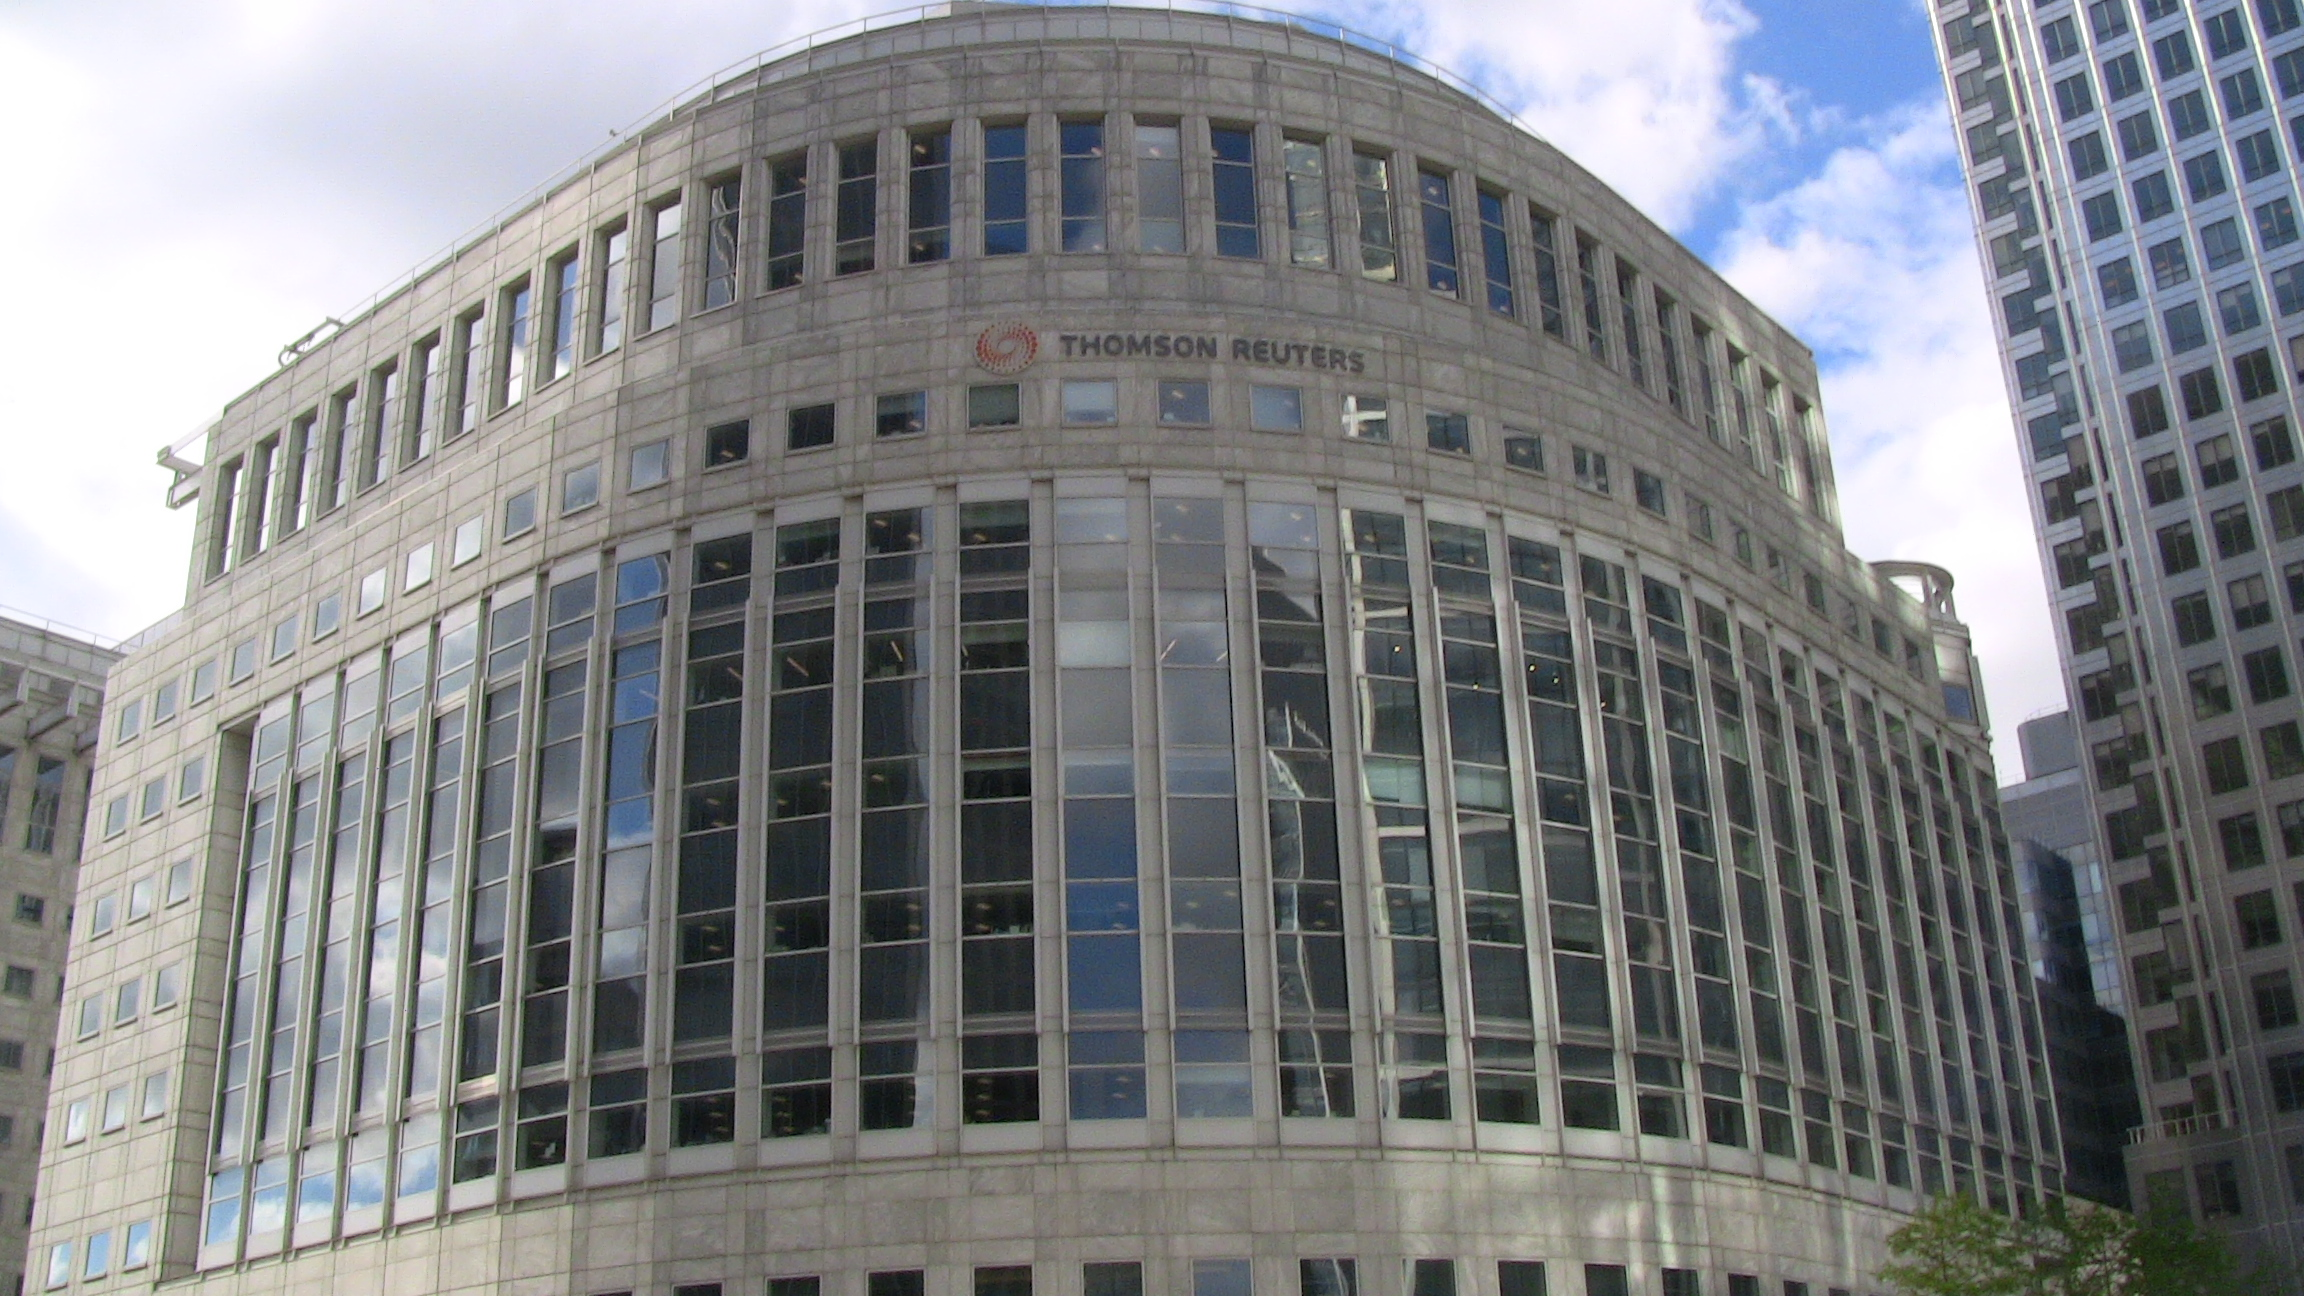 File:Thomson Reuters Building Canary Wharf jpg - Wikipedia